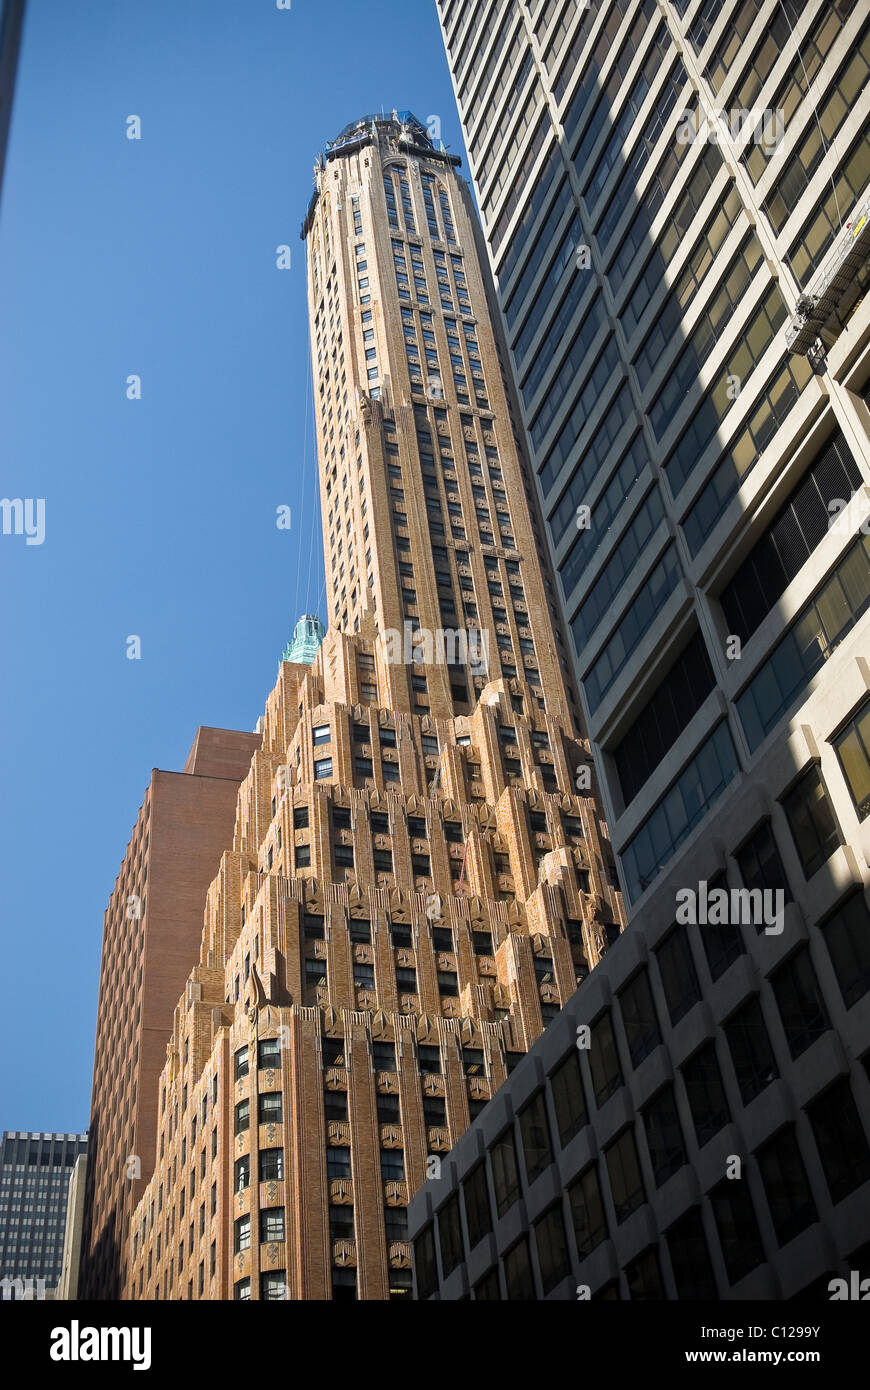 Very tall buildings in Manhattan, New York City, USA - Stock Image